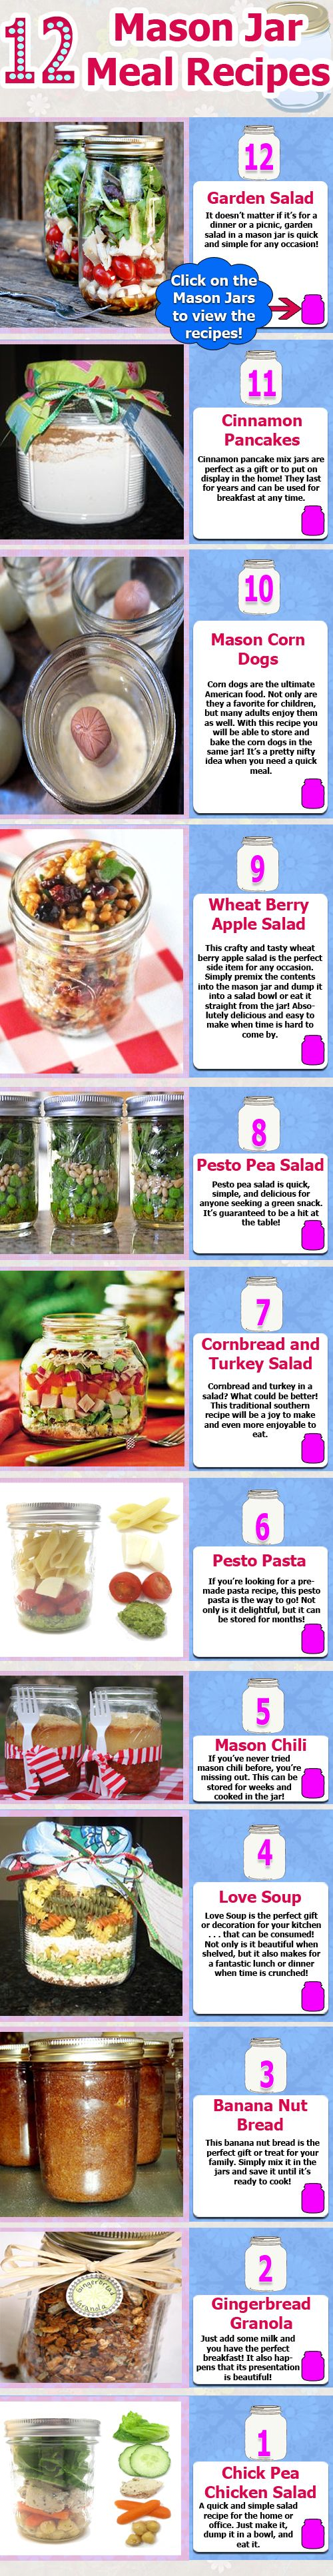 Mason jar meal recipes